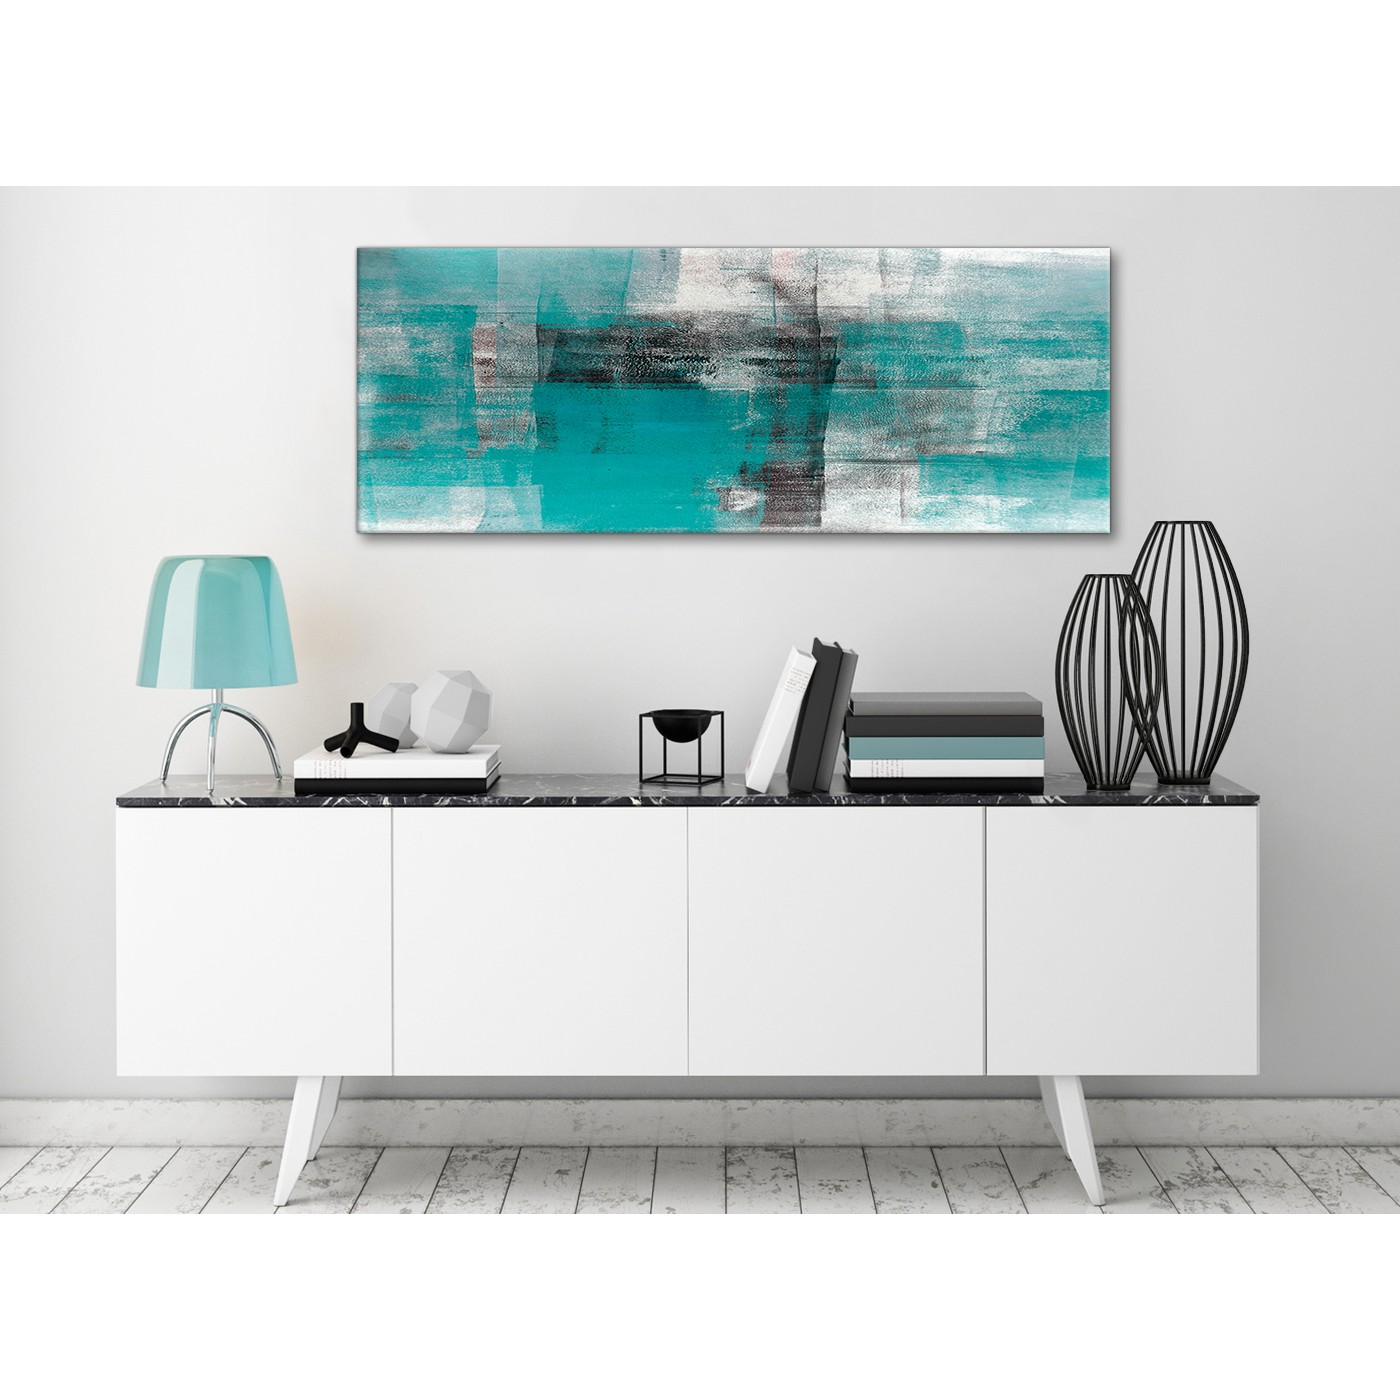 Teal Black White Painting Living Room Canvas Wall Art Accessories ...